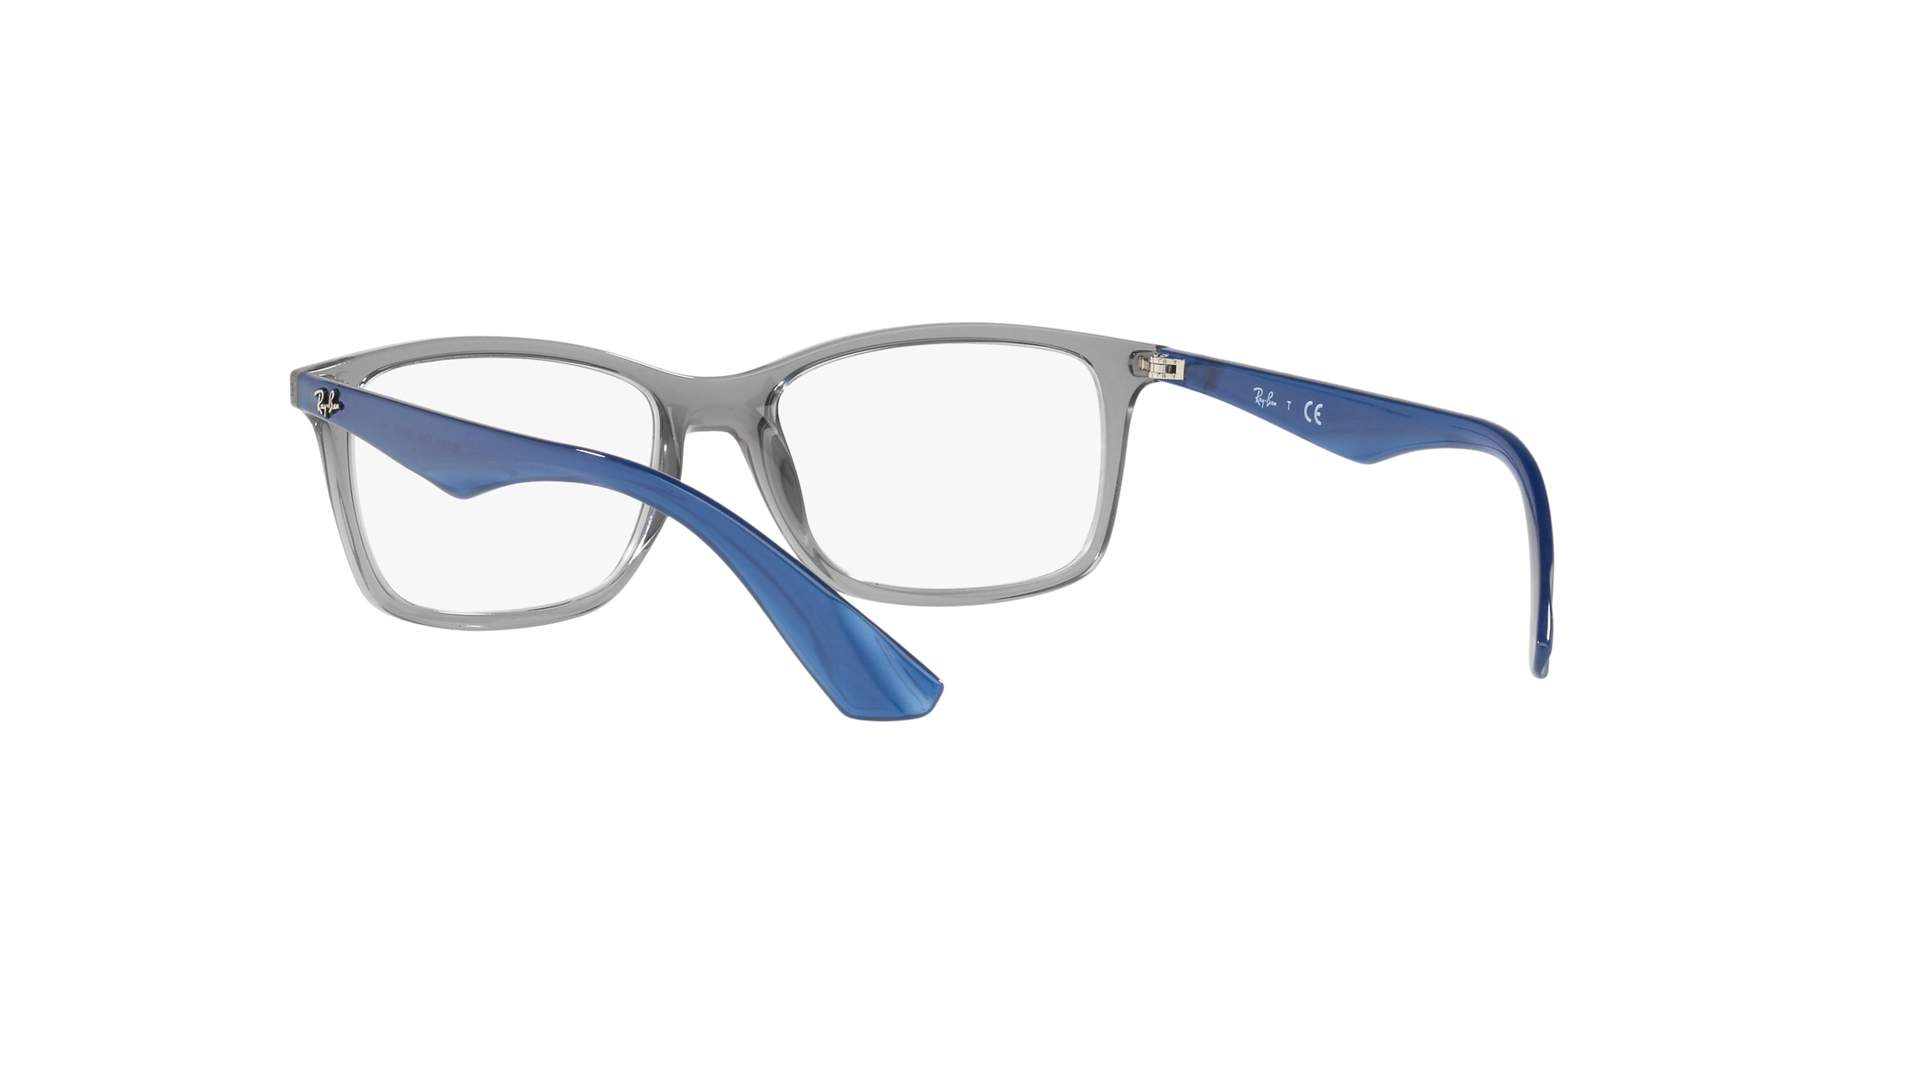 cc937cca00 Eyeglasses Ray-Ban Active Lifestyle Grey RX7047 RB7047 5769 54-17 Medium